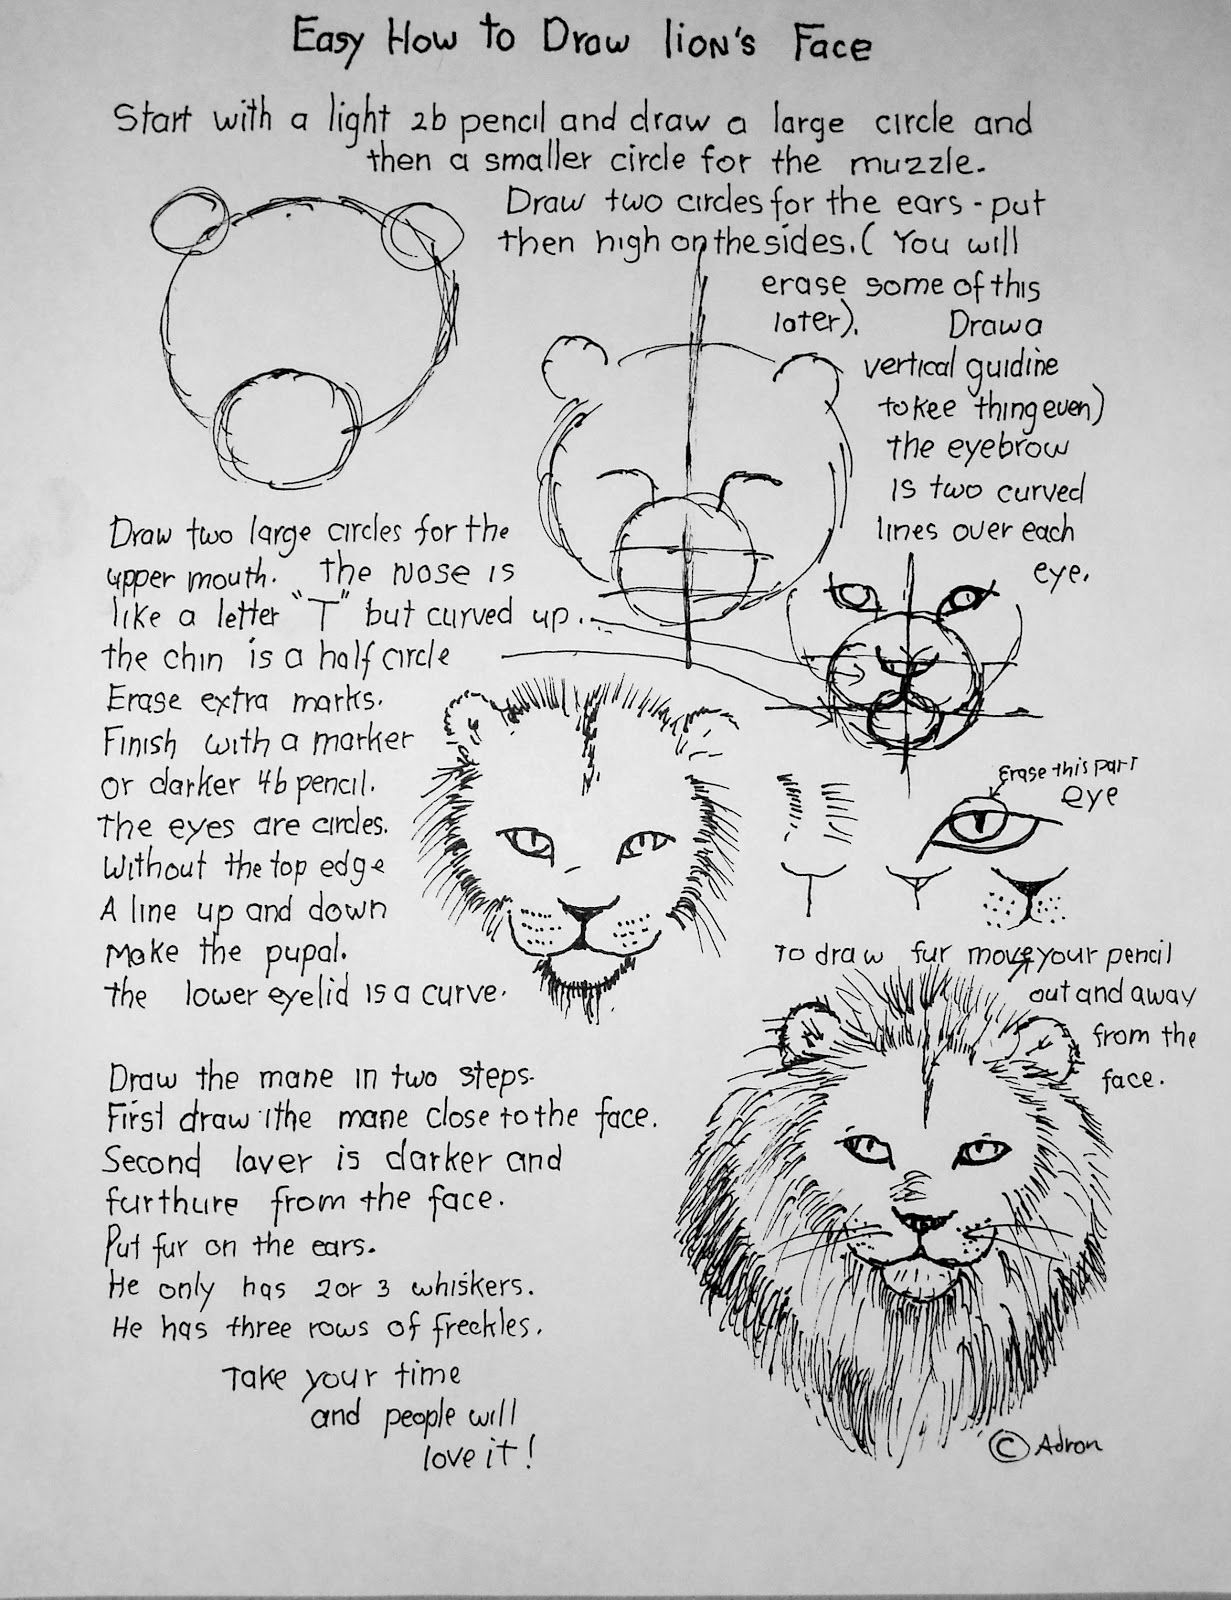 How To Draw A Lion S Face Easy Lesson And Worksheet